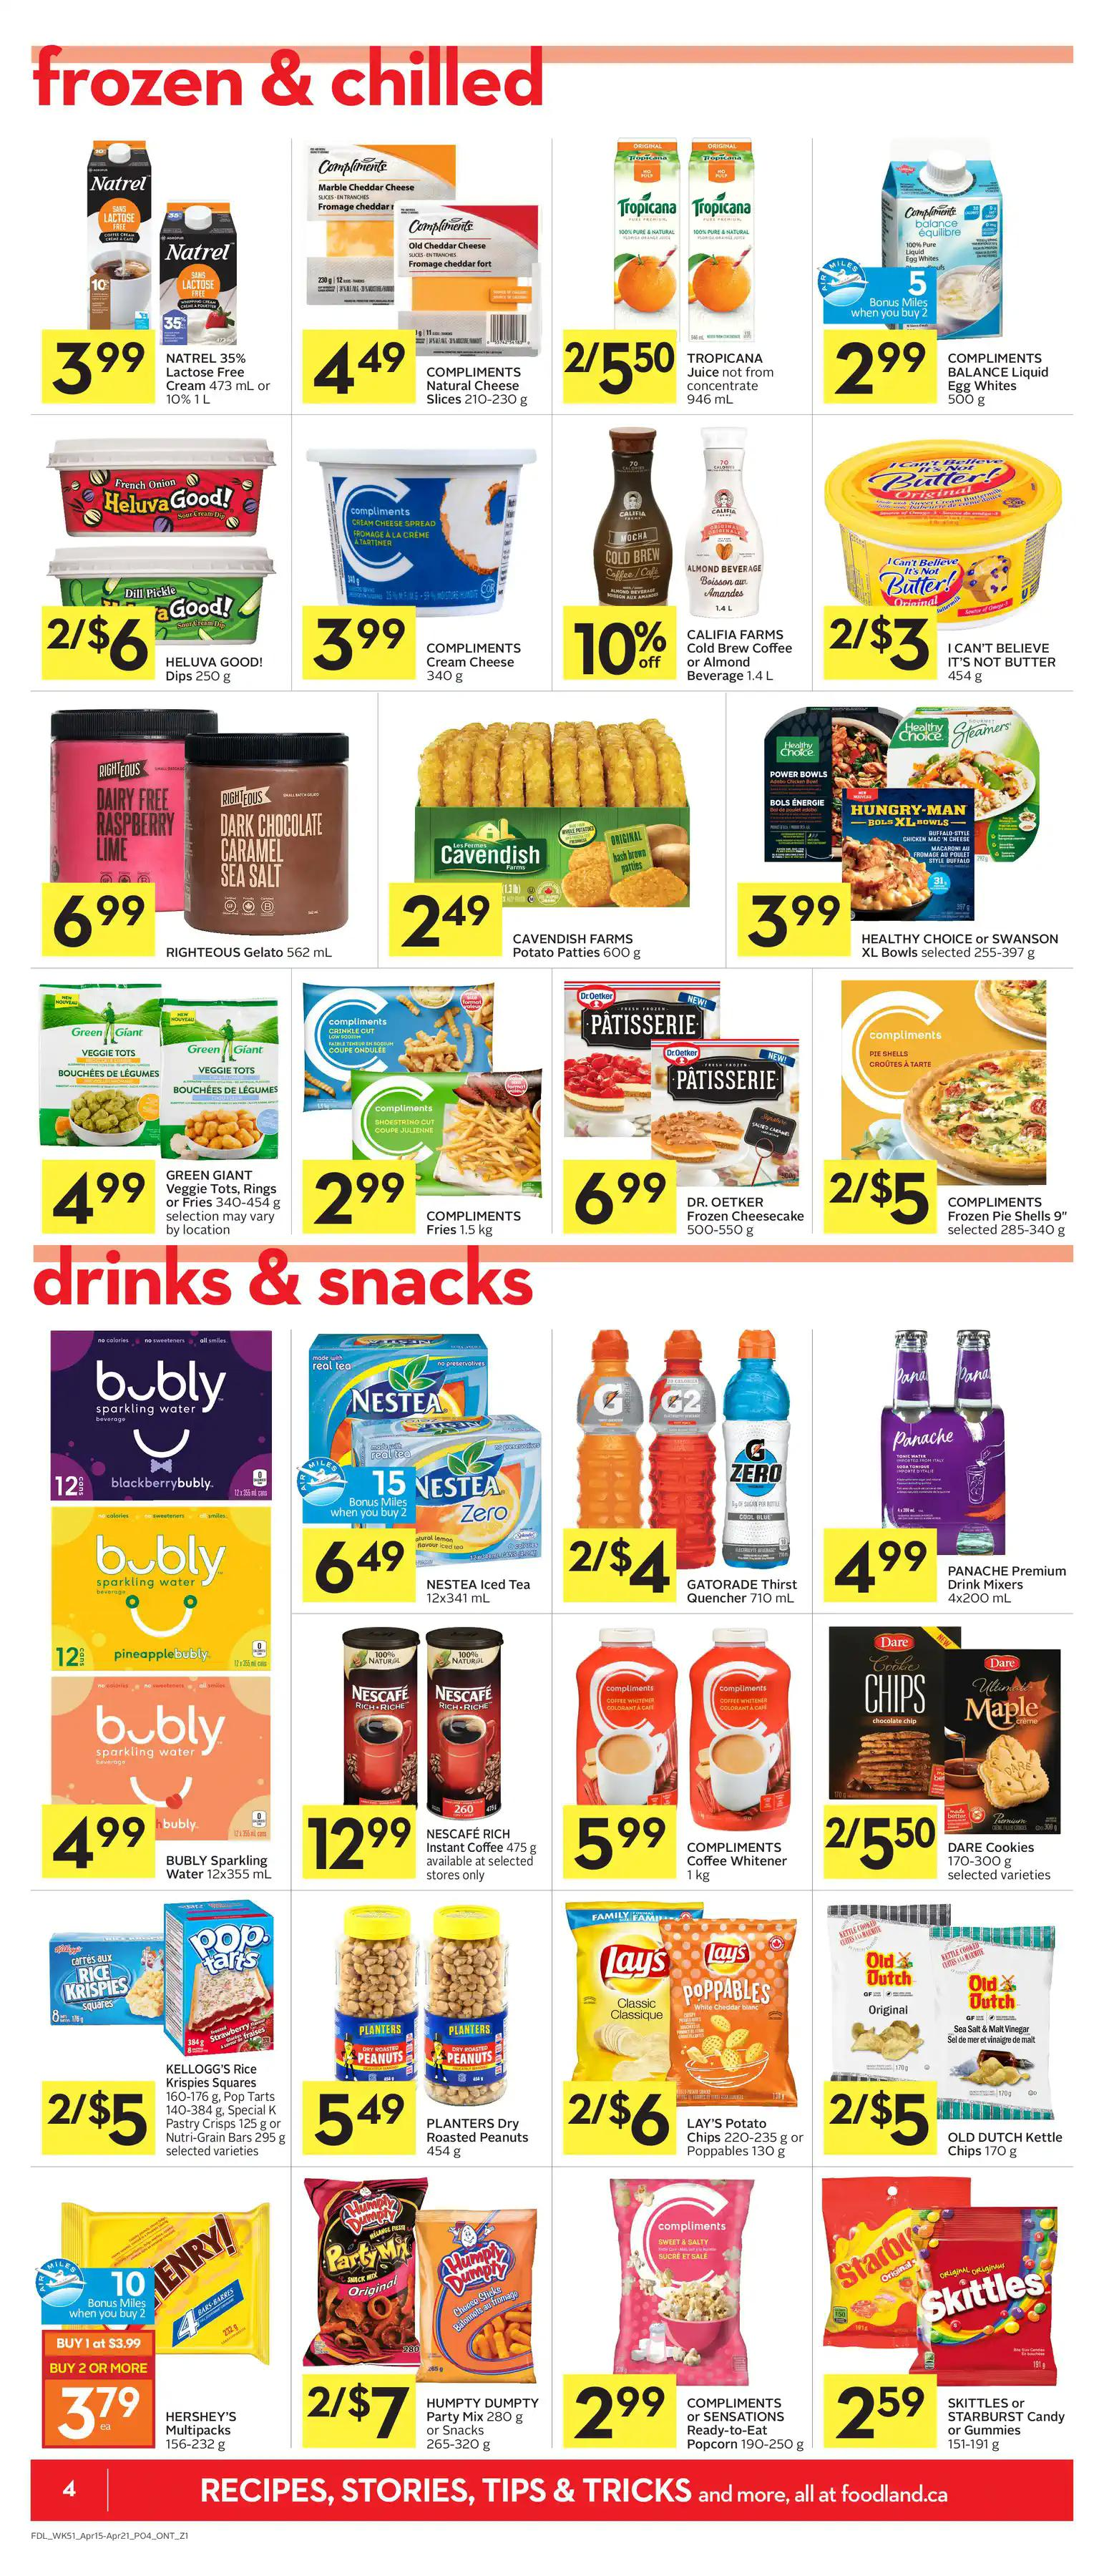 Foodland - Weekly Flyer Specials - Page 4